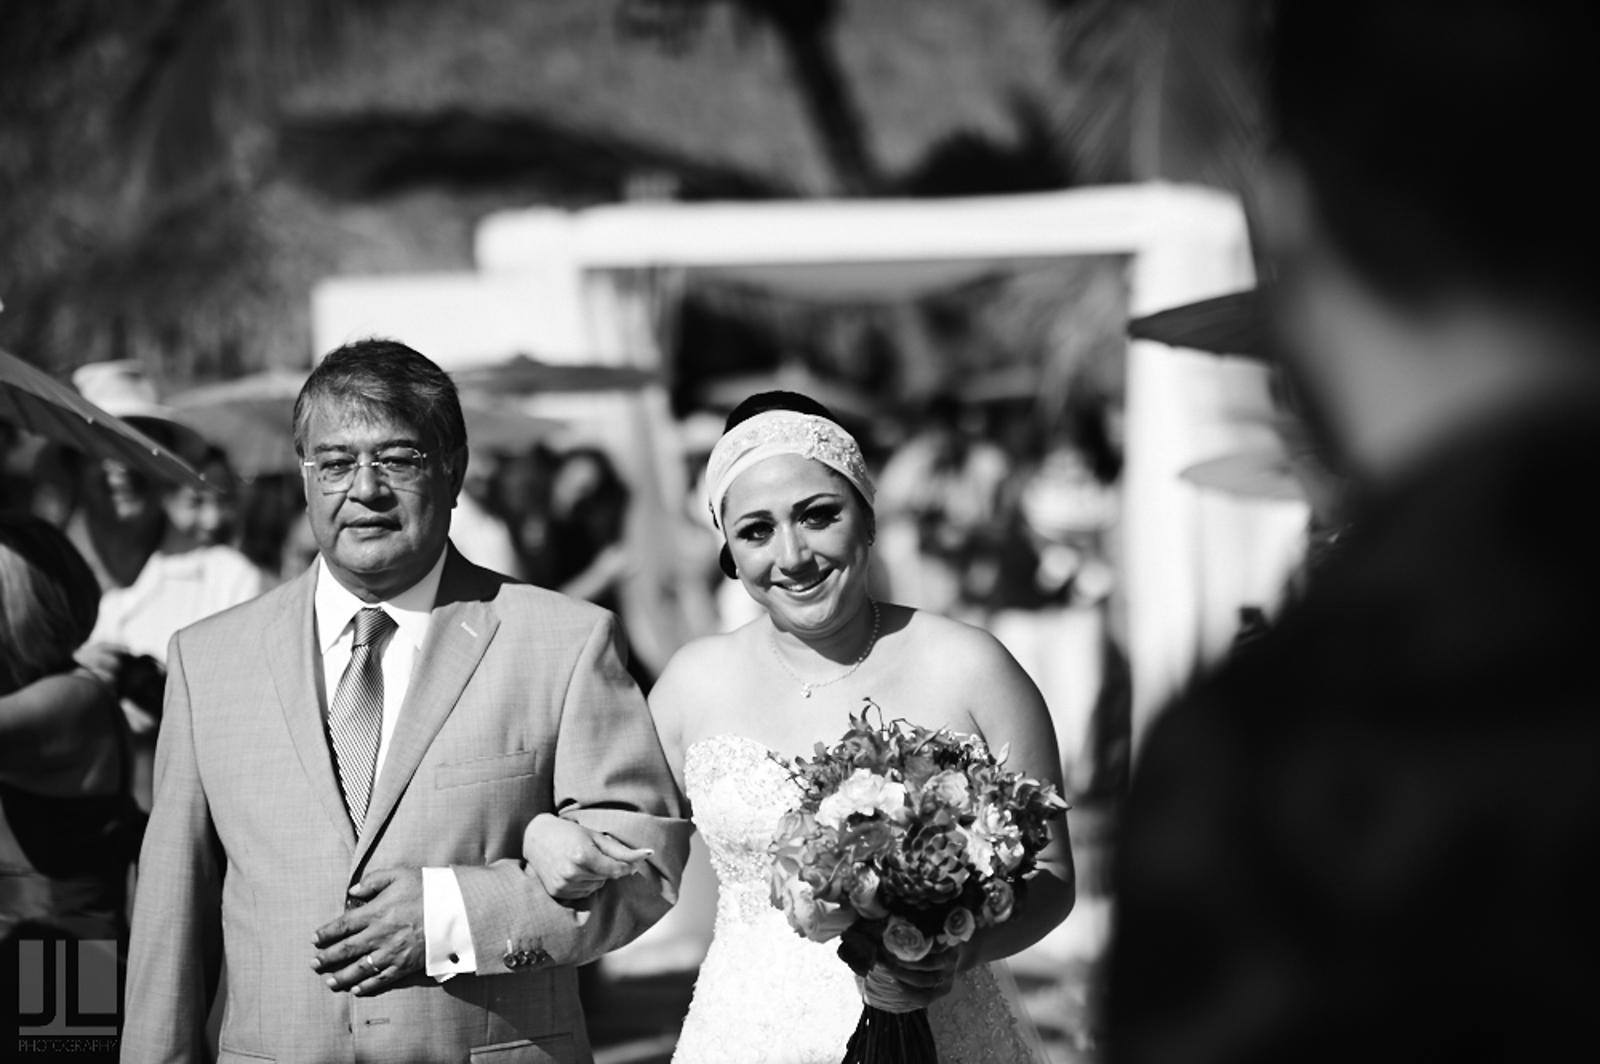 Wedding photo-journalism and portraiture in Puerto Vallarta